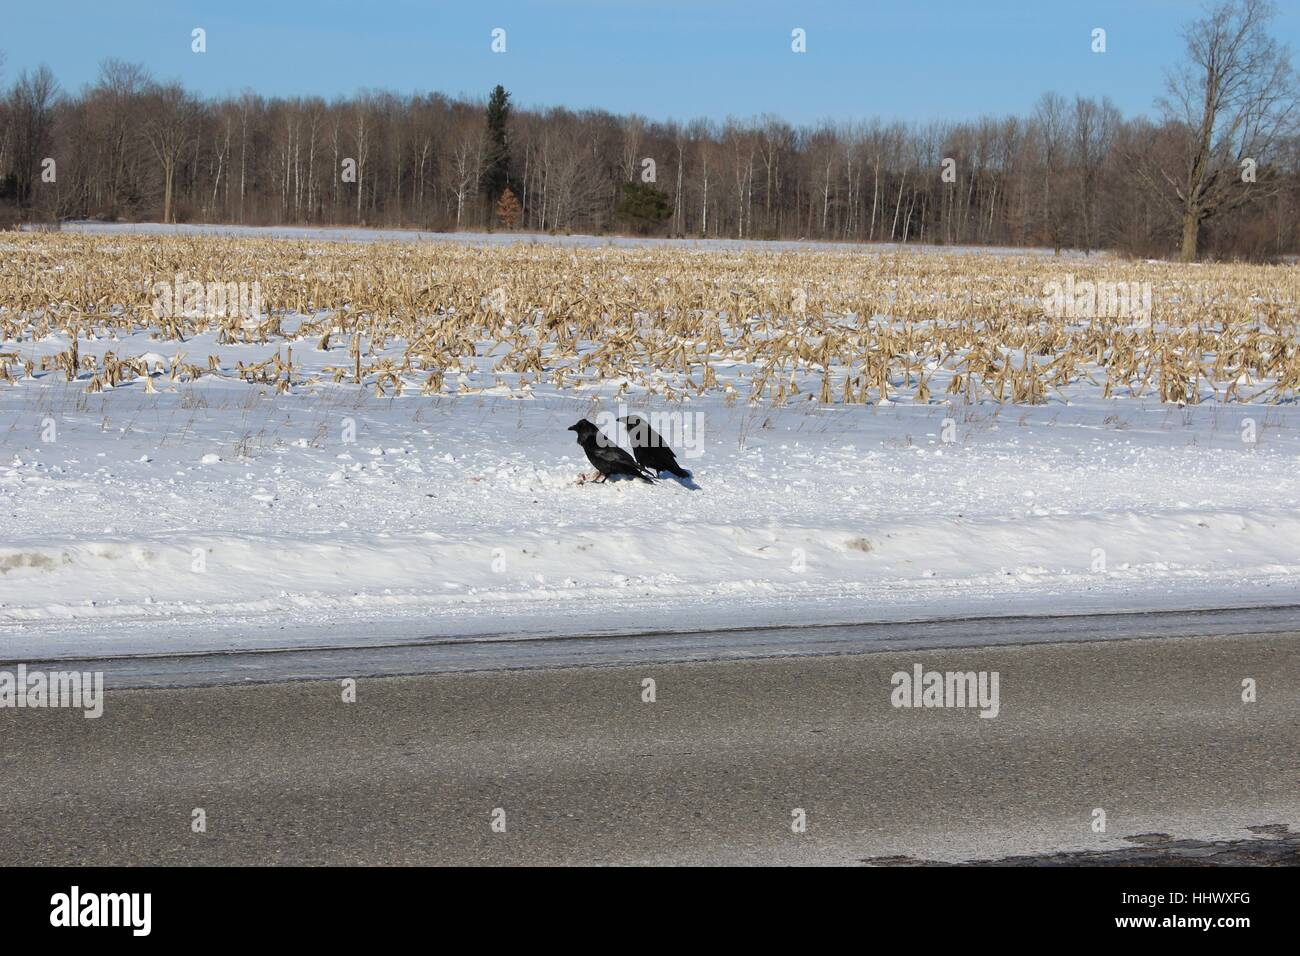 Two Crows Seemingly Reminiscing As They Look Across An Old Snowy Corn Field - Stock Image